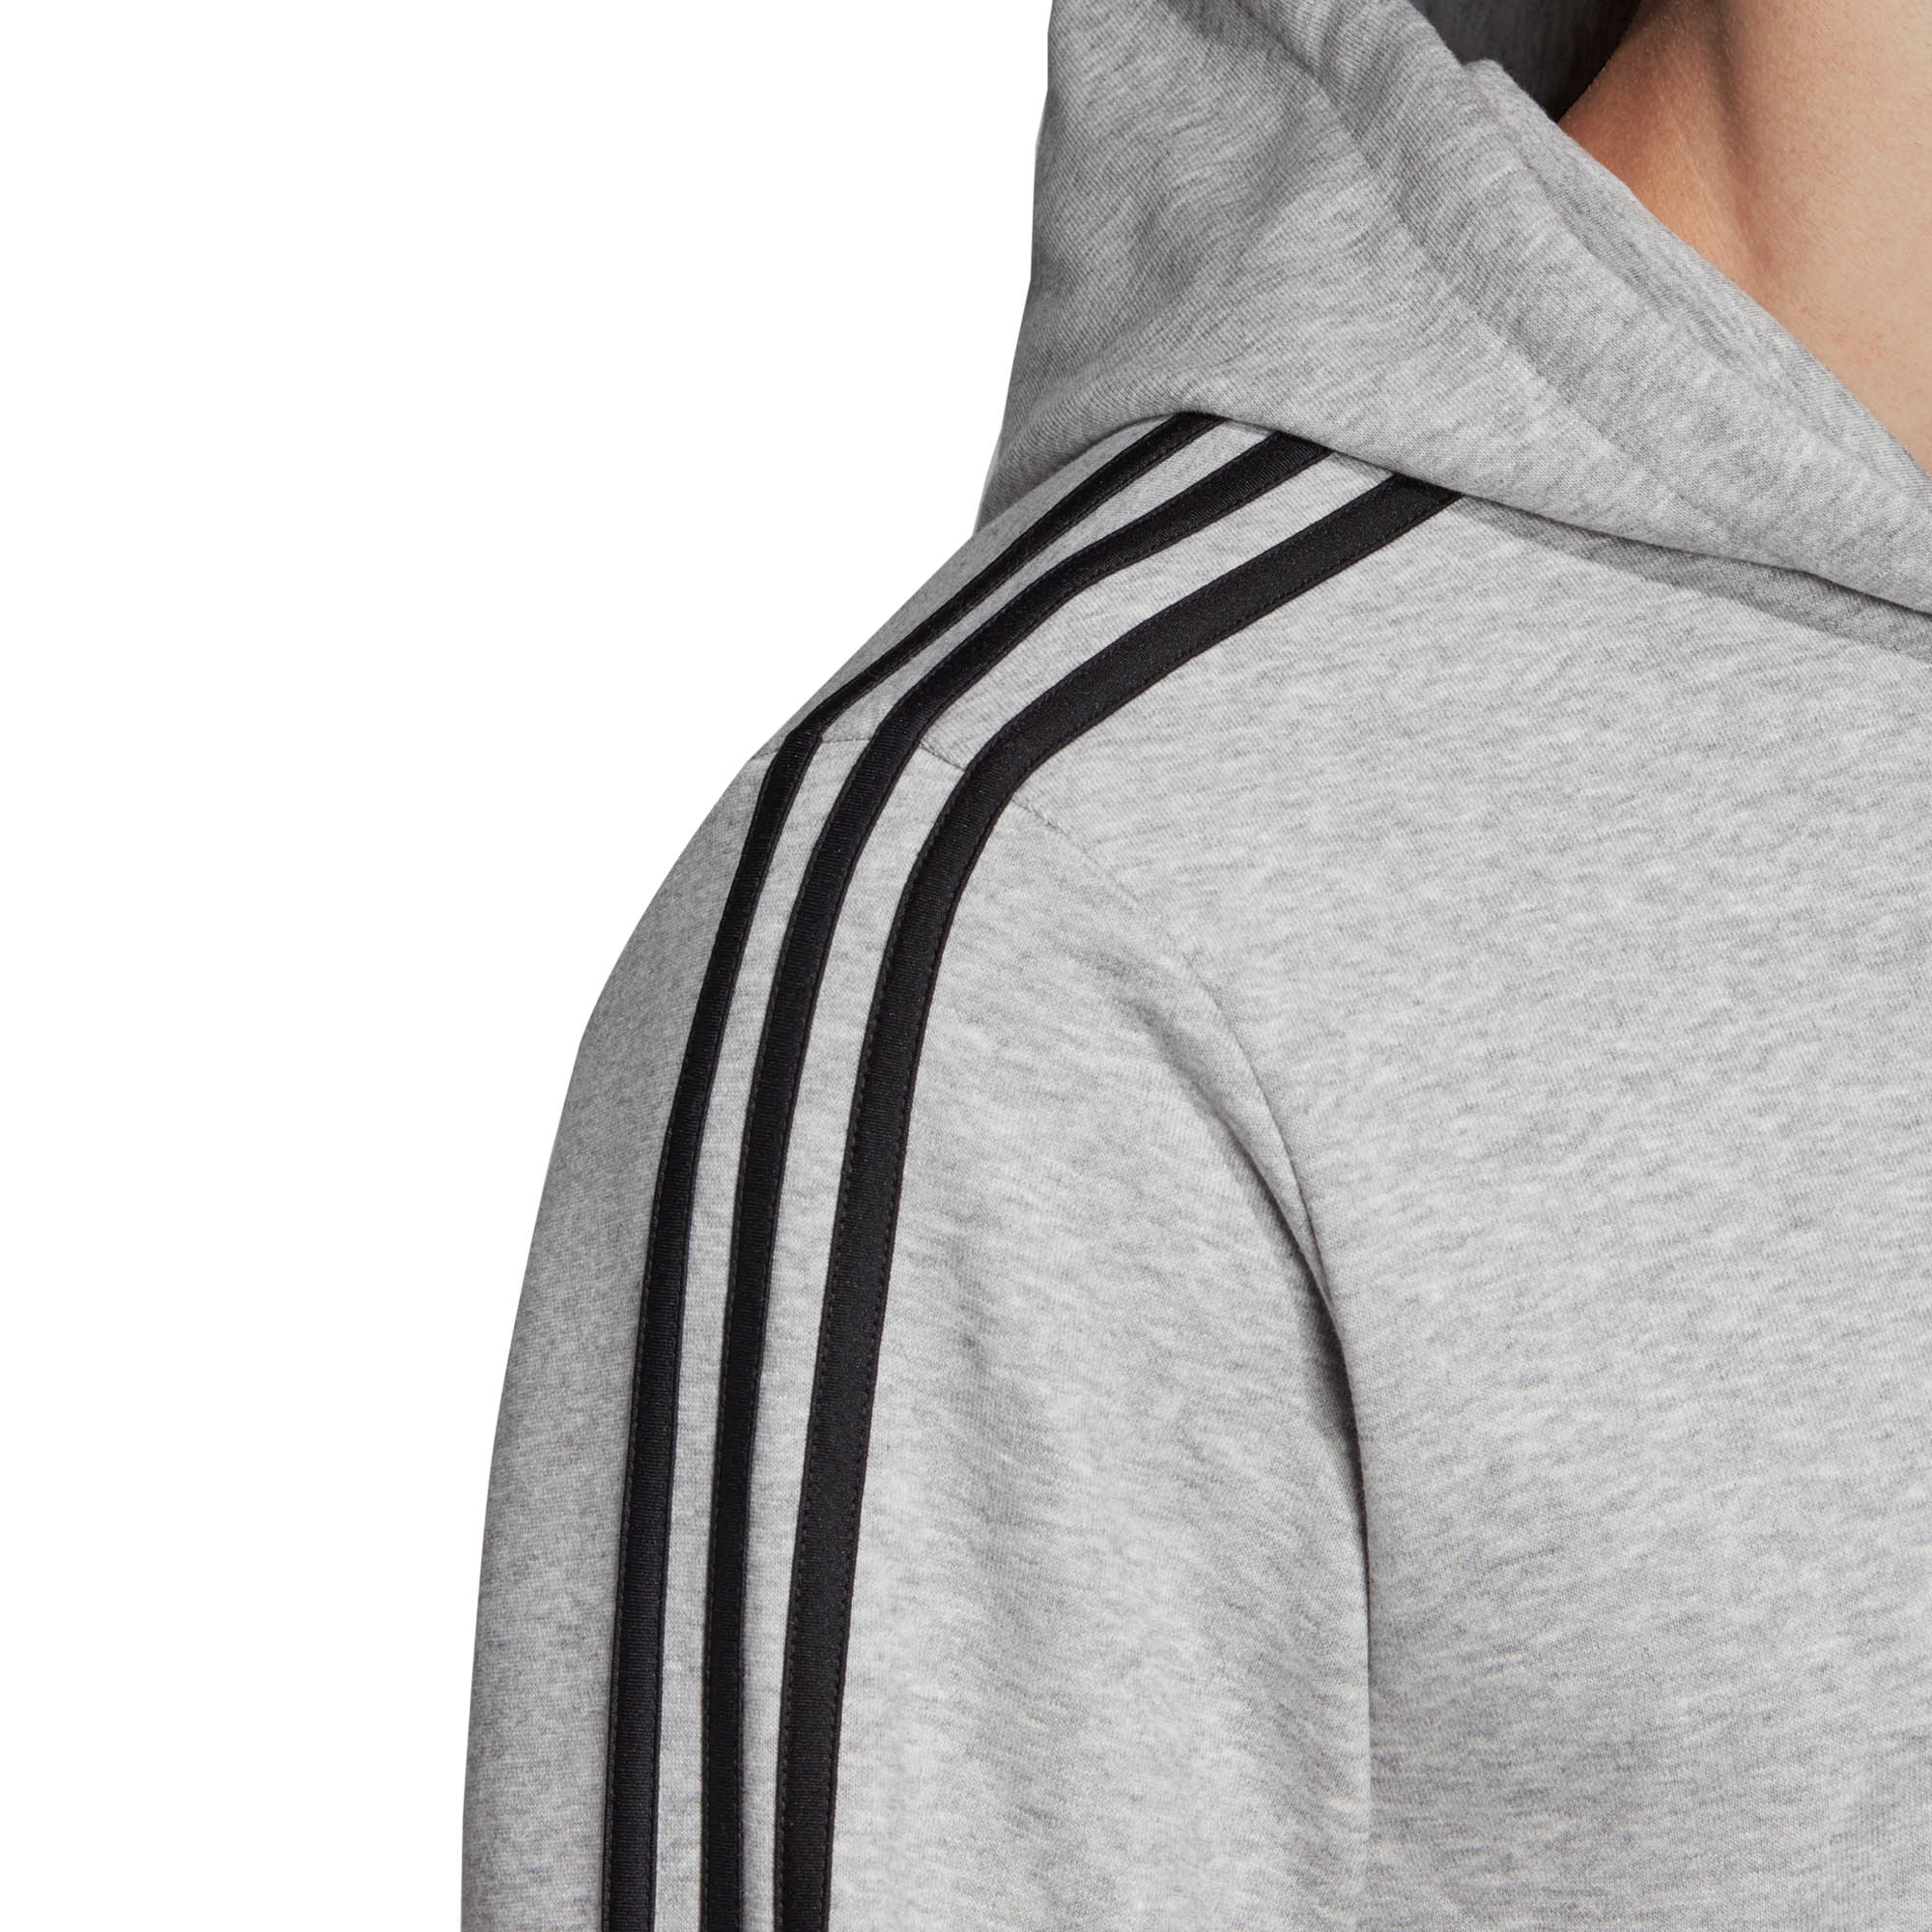 adidas-Essential-3-Stripe-Mens-Full-Zip-Hoodie-Hoody-Jacket-Grey-Black thumbnail 7